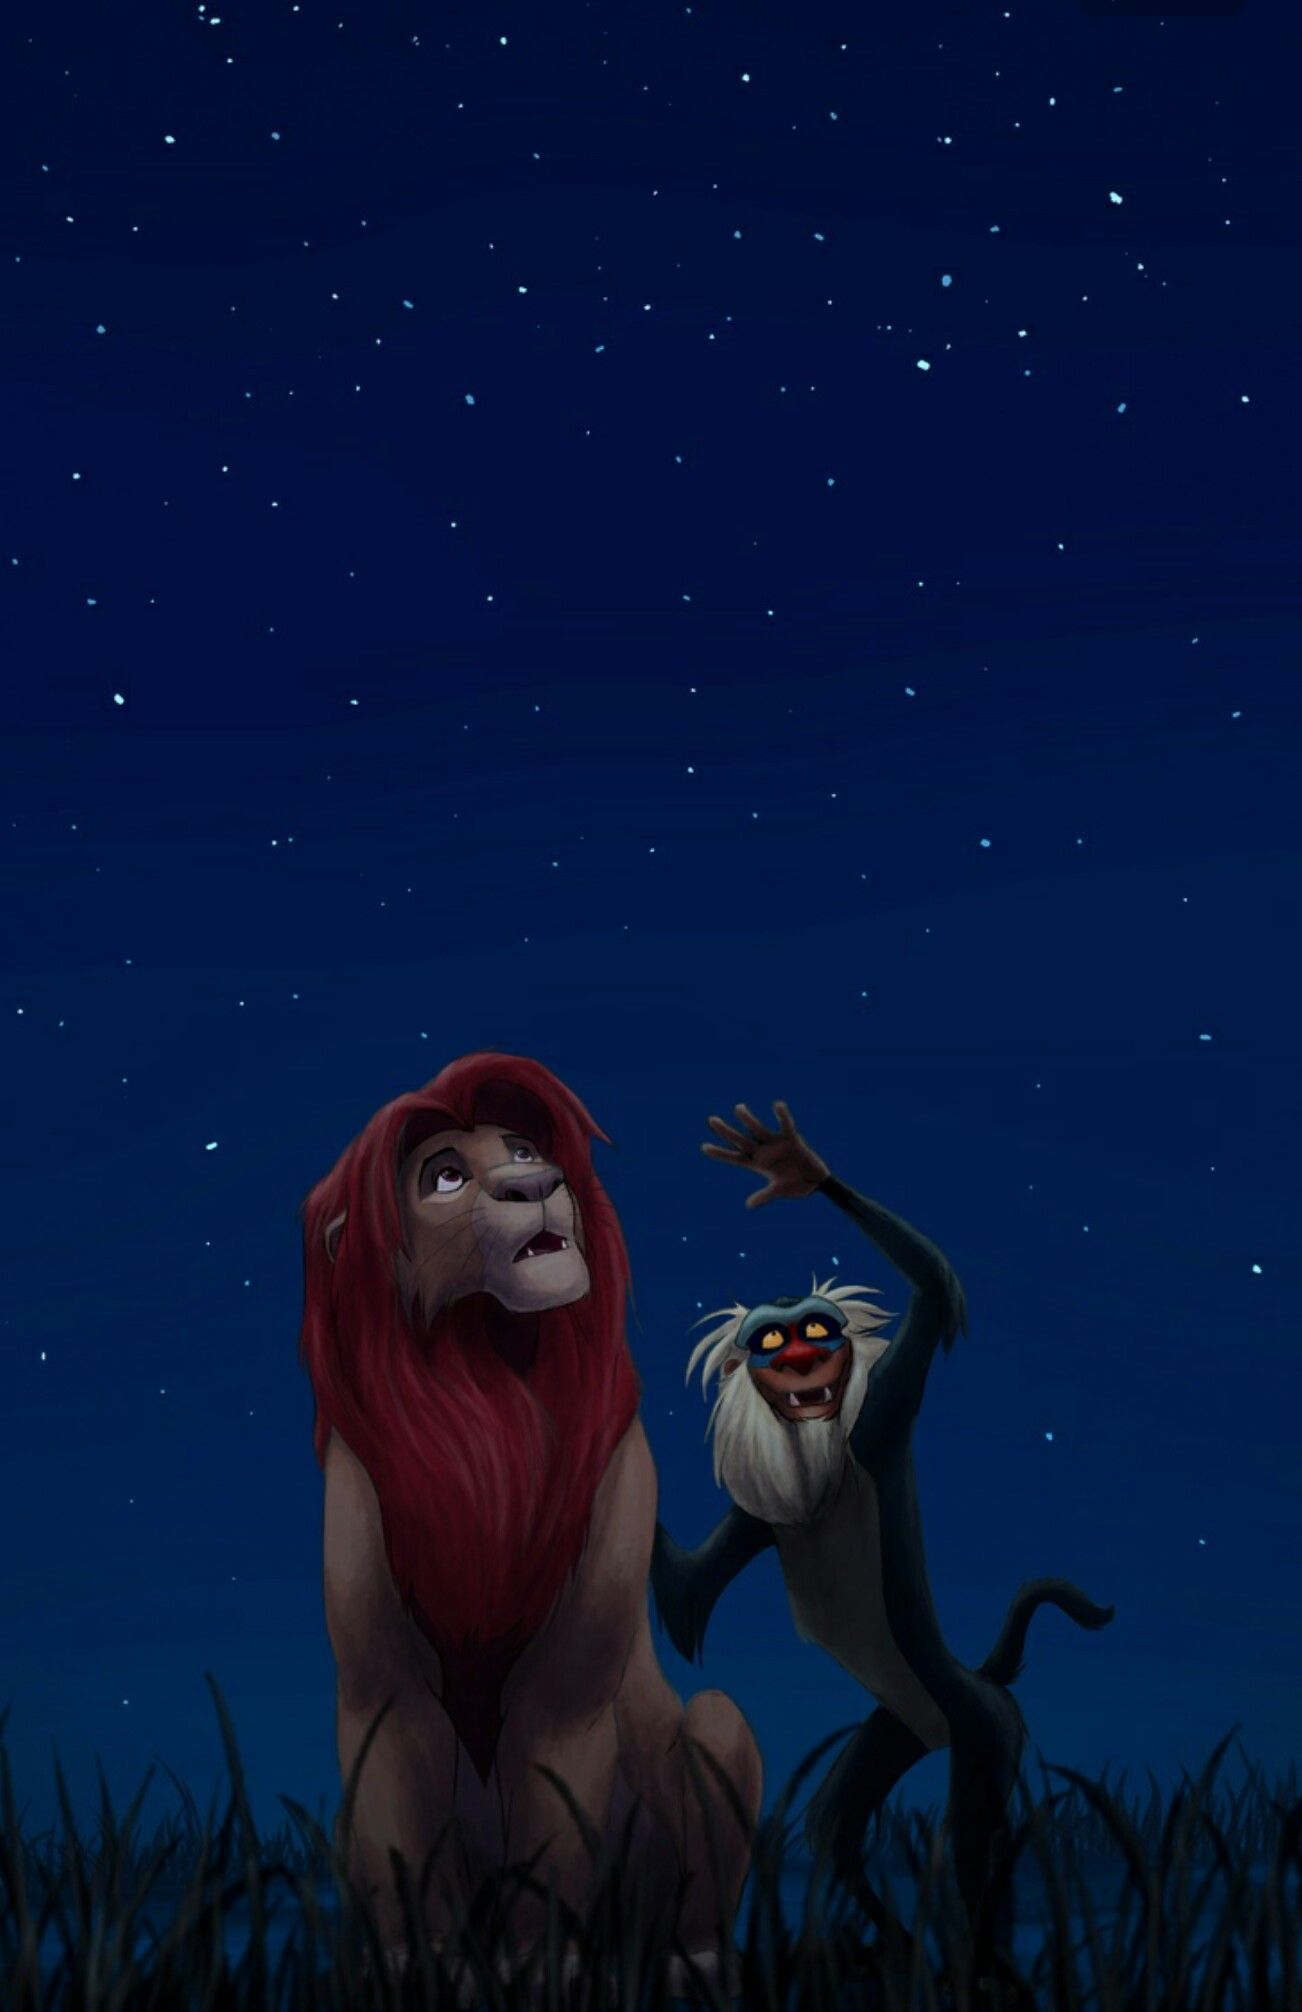 Interesting image by Brianna Yanez The lion king